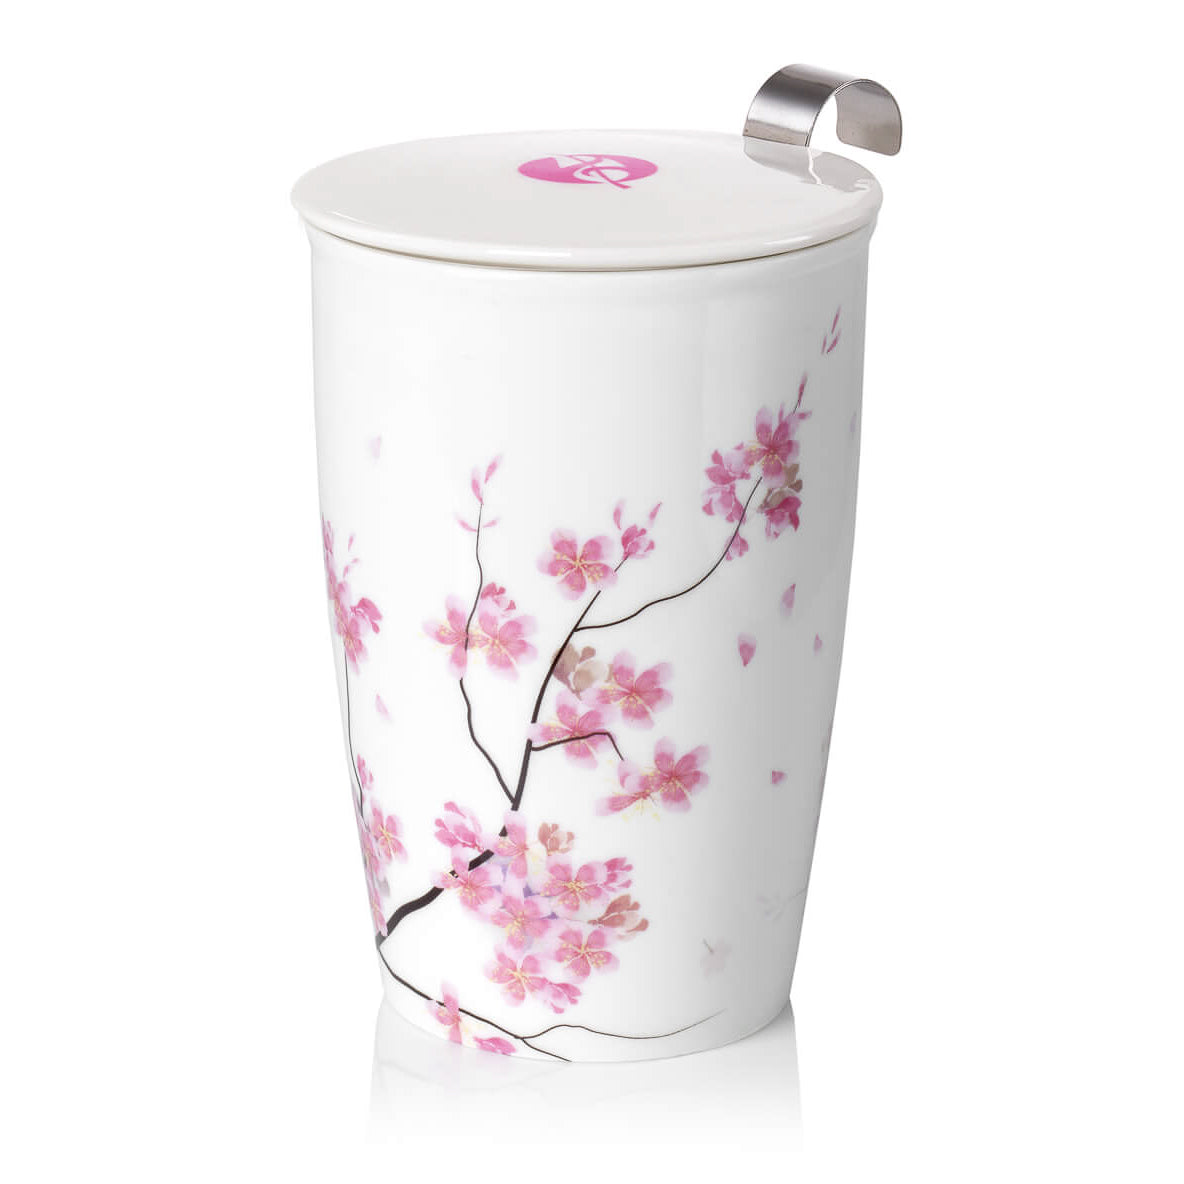 Double-wall Porcelain Mug with Infuser - Petals